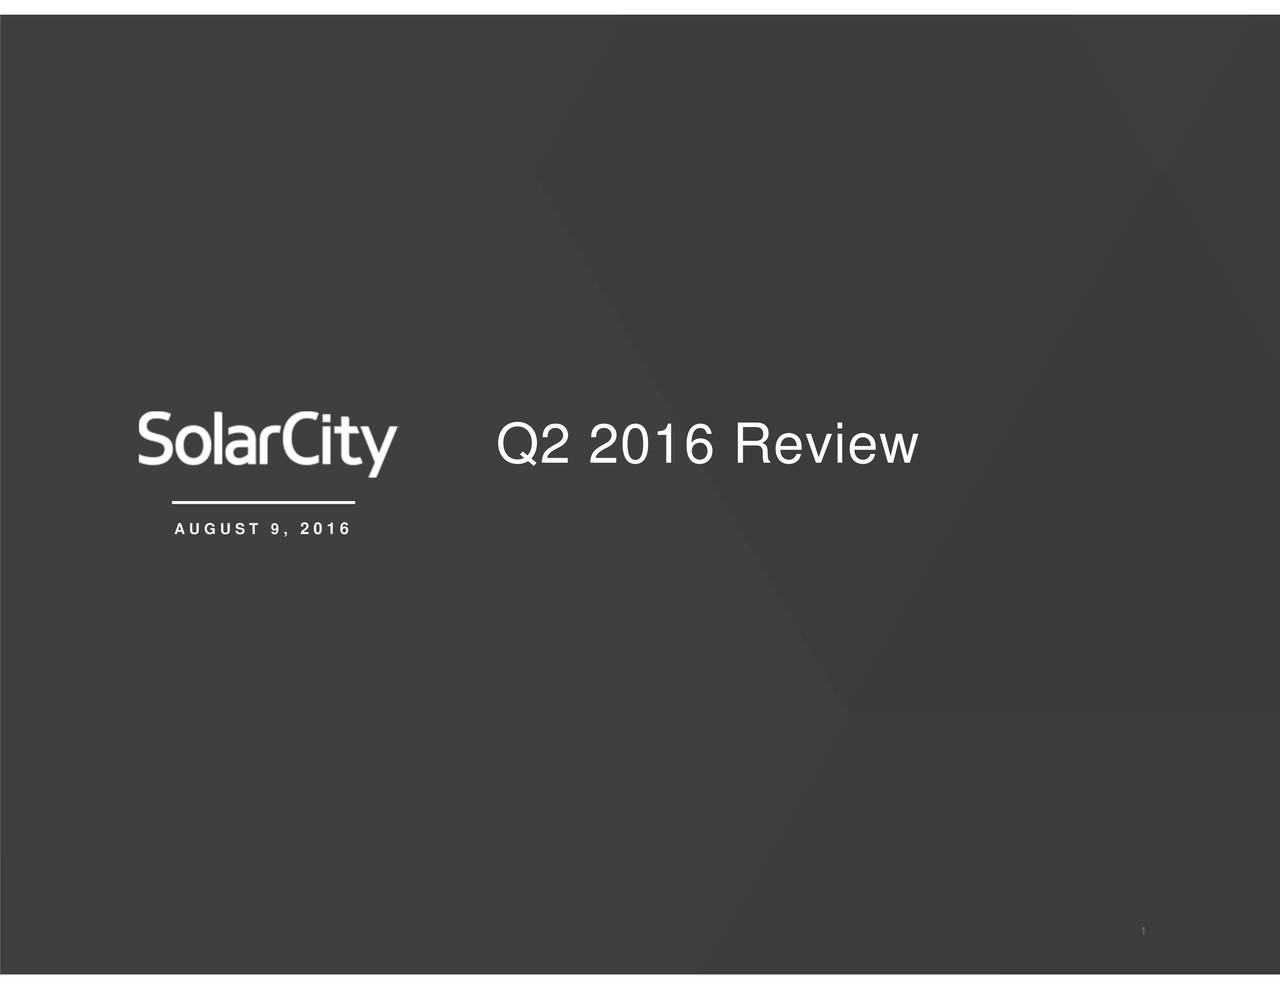 Q2 2016 Review 2016 AUGUST 9,